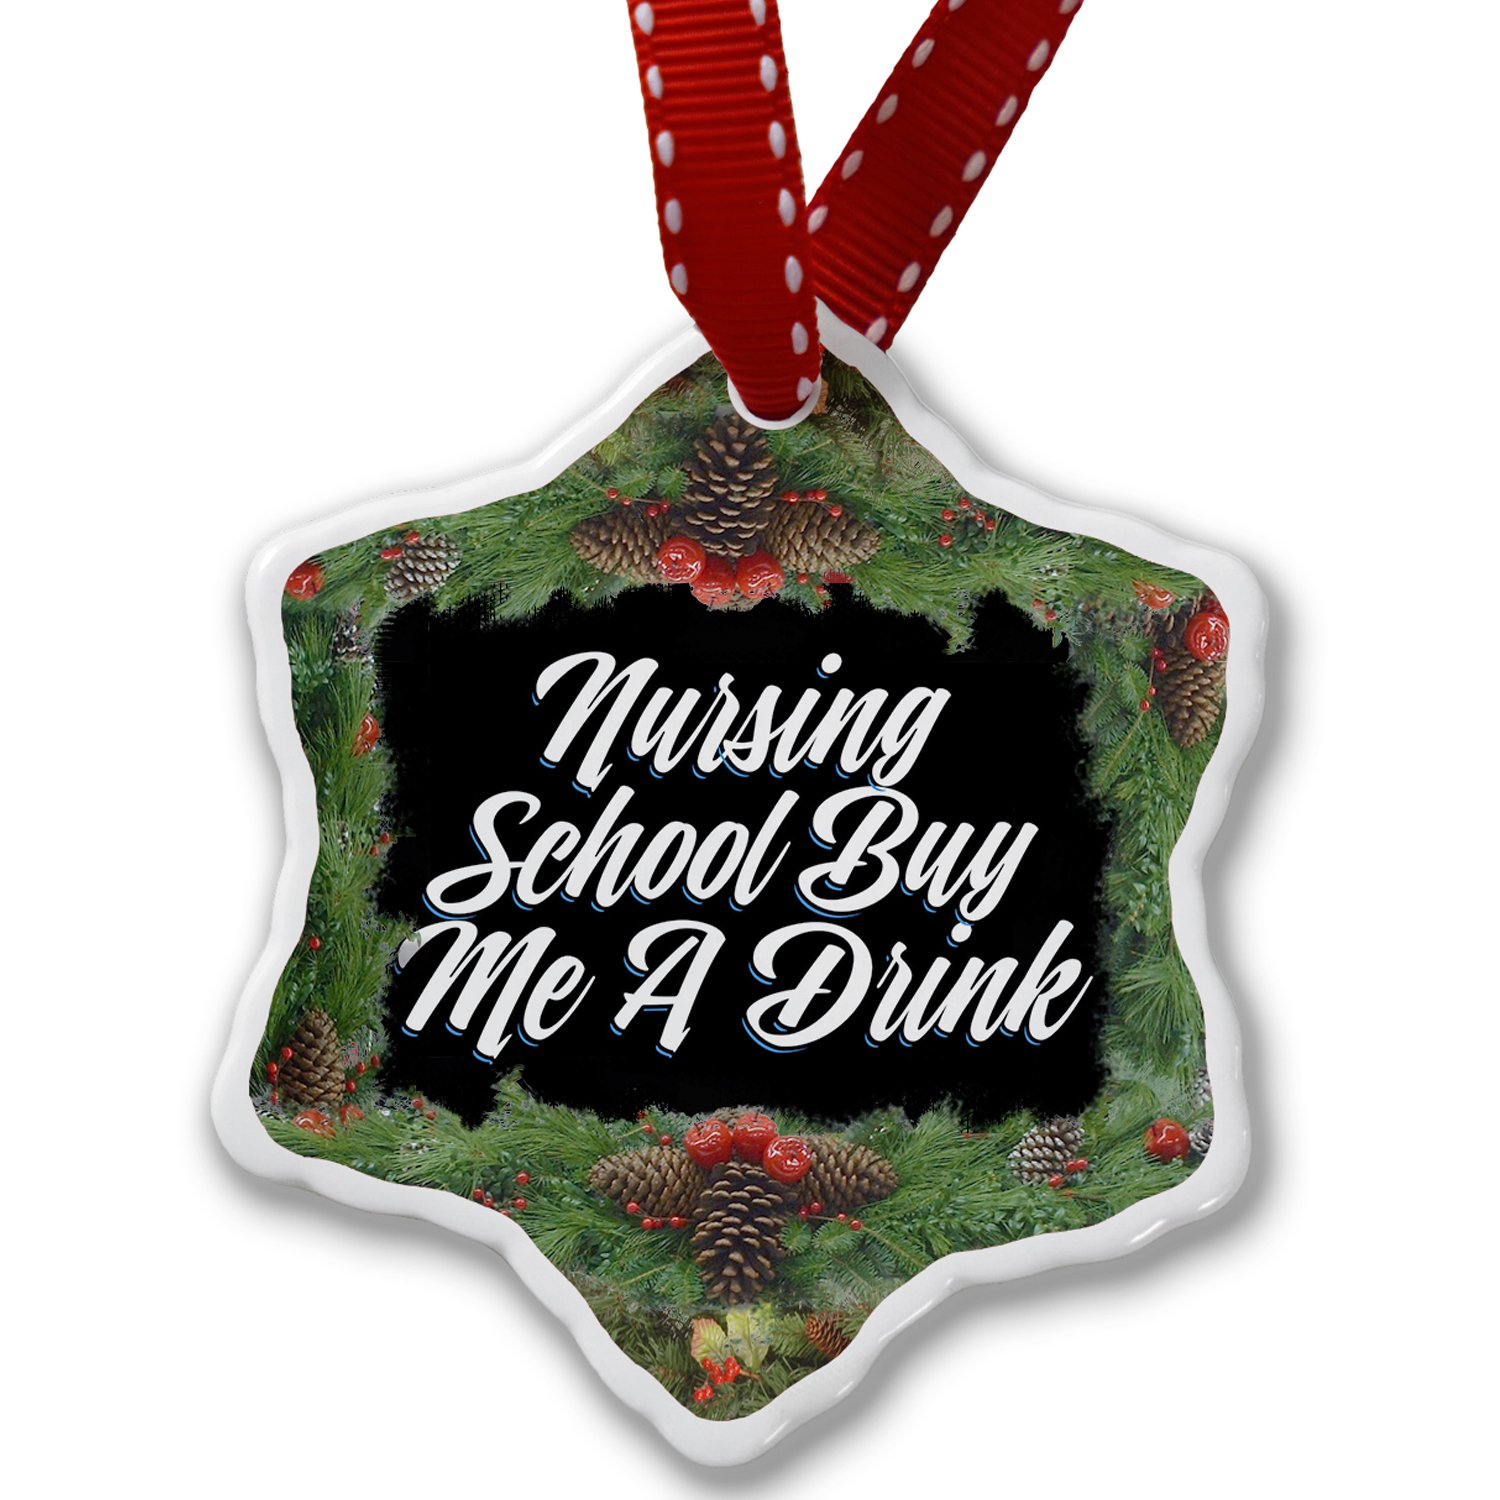 Amazon.com: Christmas Ornament Classic design Nursing School Buy Me ...